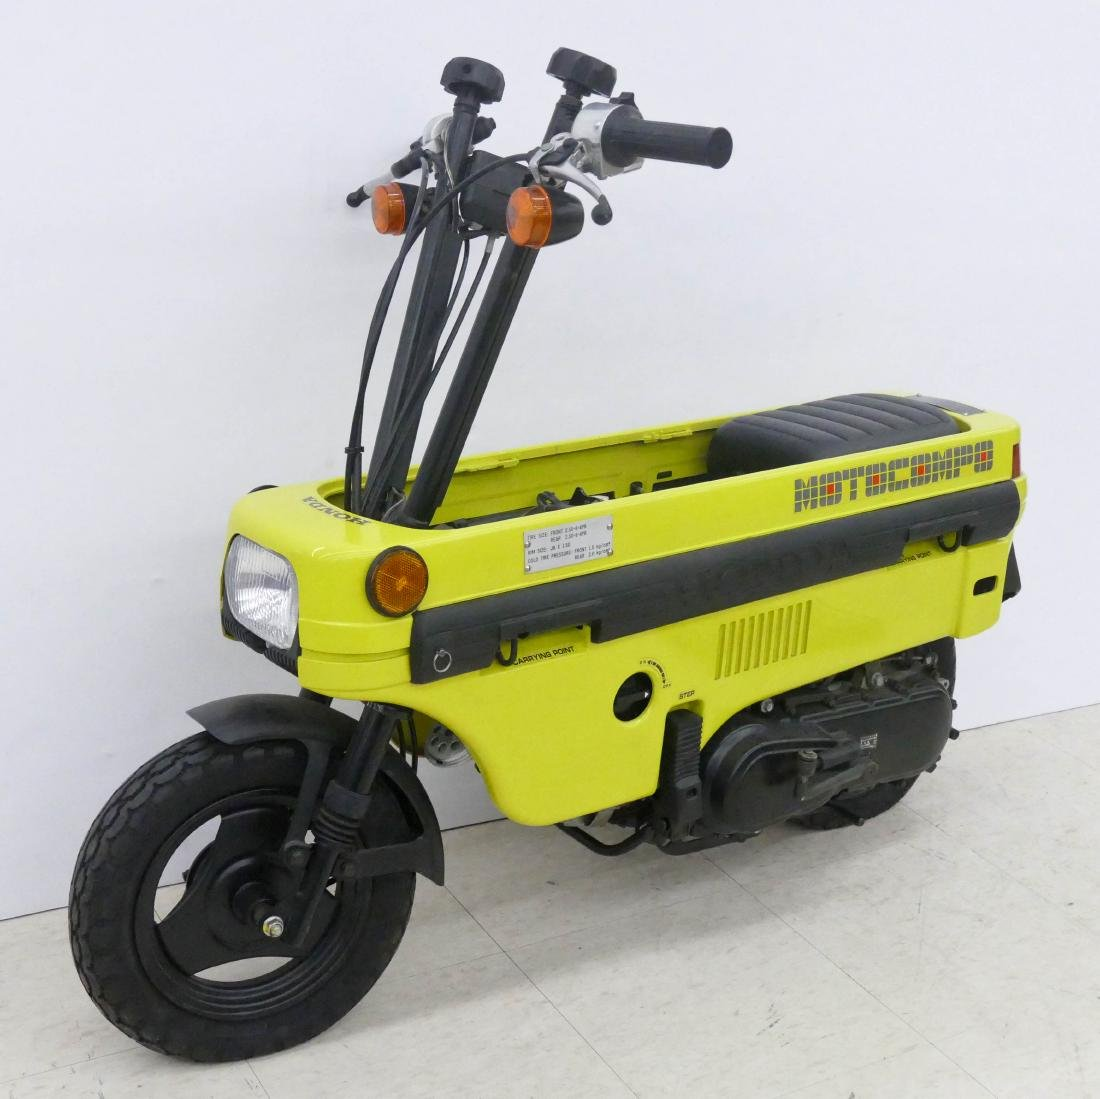 1982 Honda Motocompo Compact Trunk Bike or Scooter.